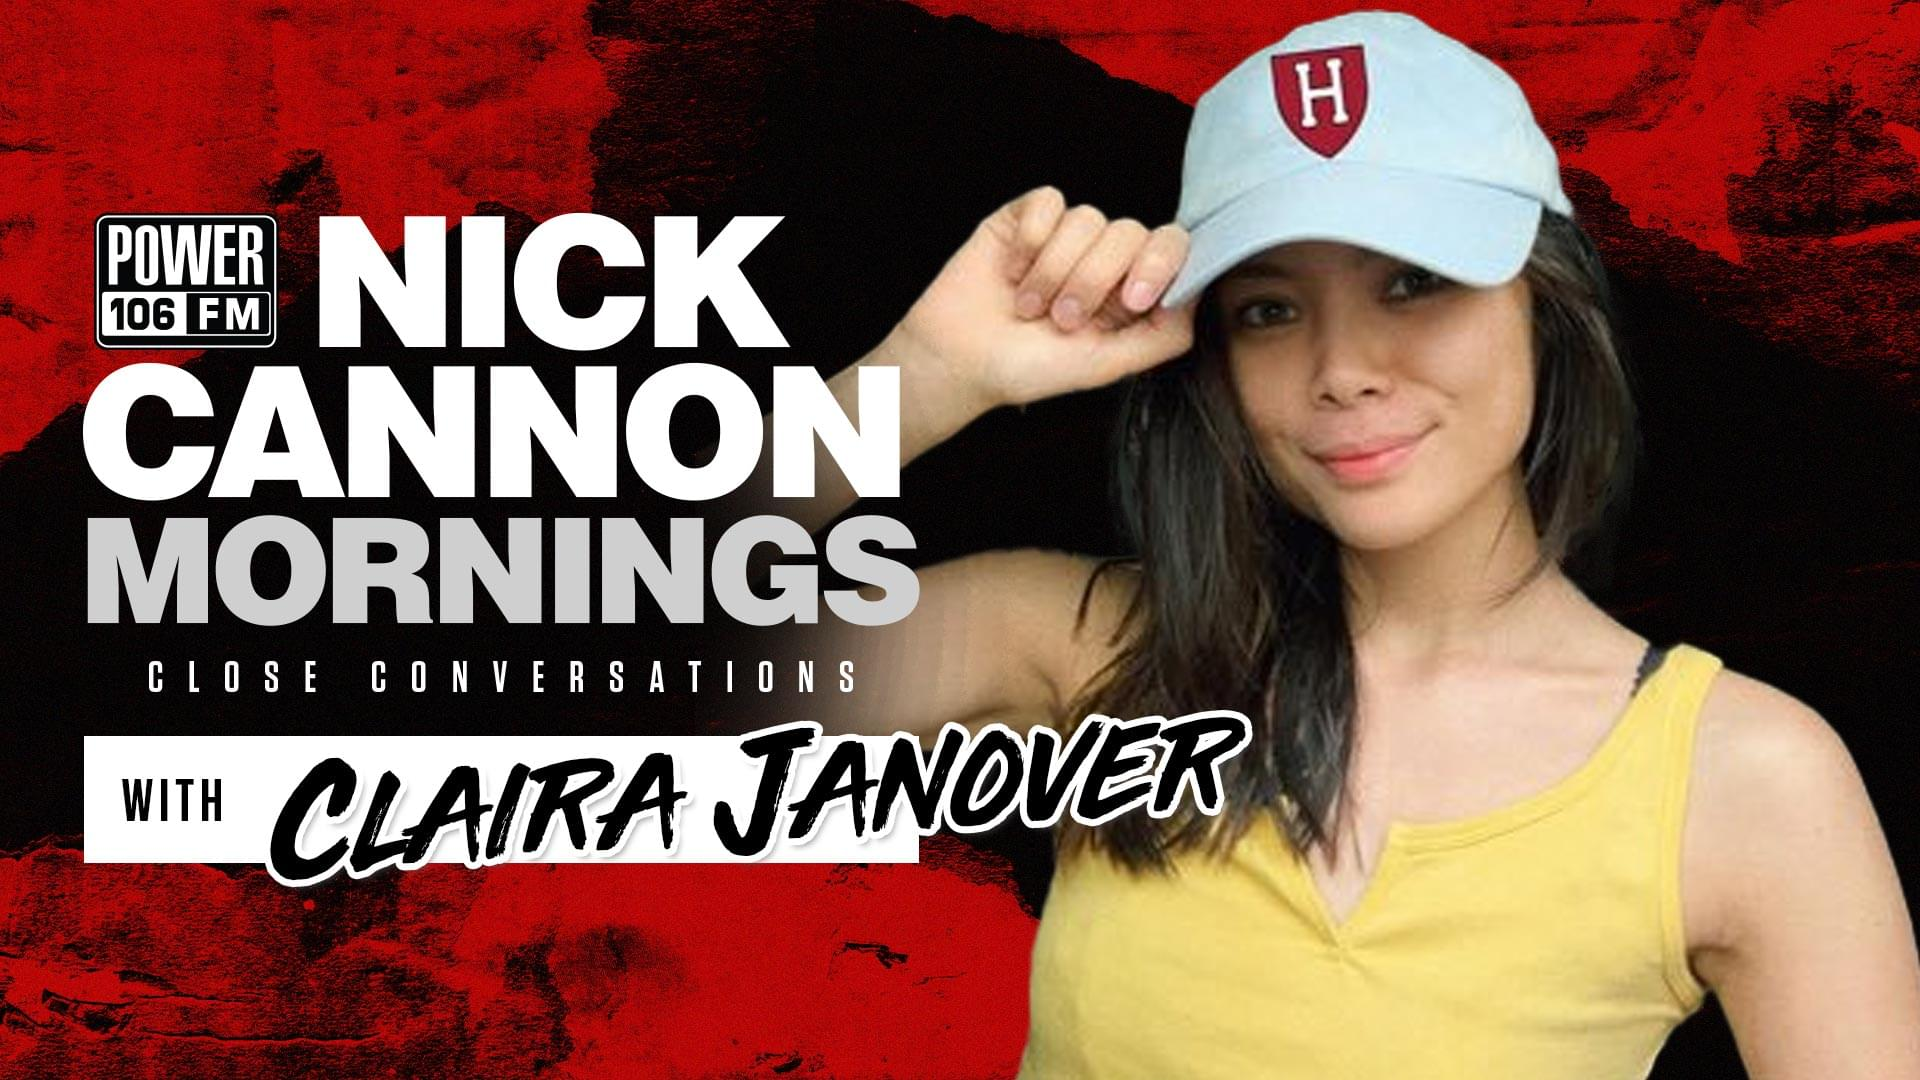 Claira Janover on Her Viral TikTok, Black Lives Matter, Being Fired From Her Job, Media Scare Tactics & More